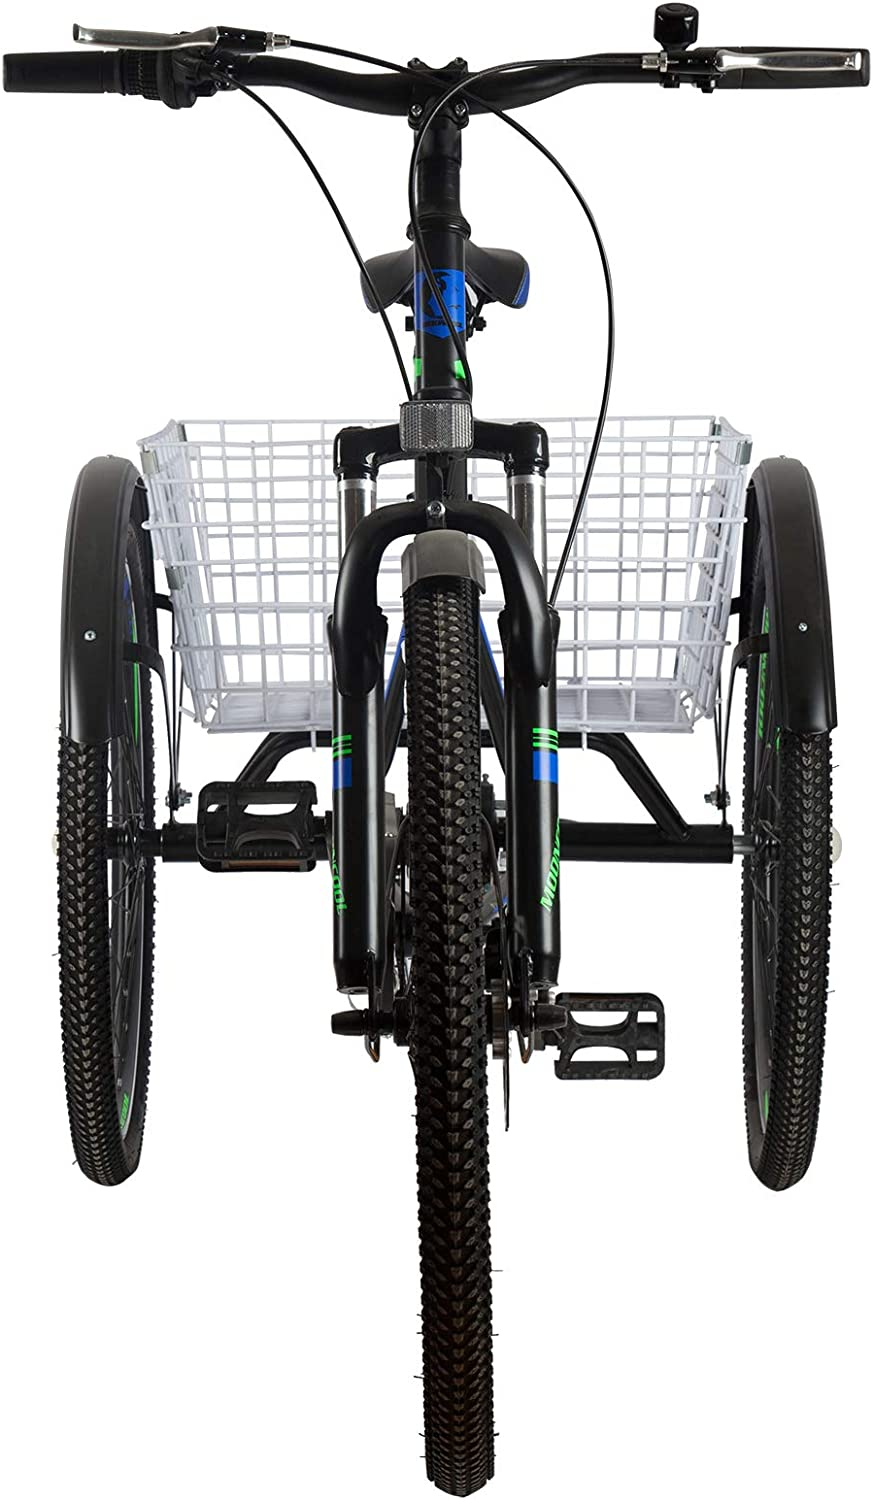 Youth with Shopping Basket Exercise Mens Womens Tricycles 24//26 Inch Adults Trikes for Seniors Slsy Adult Mountain Tricycle 7 Speed Three Wheel Bike